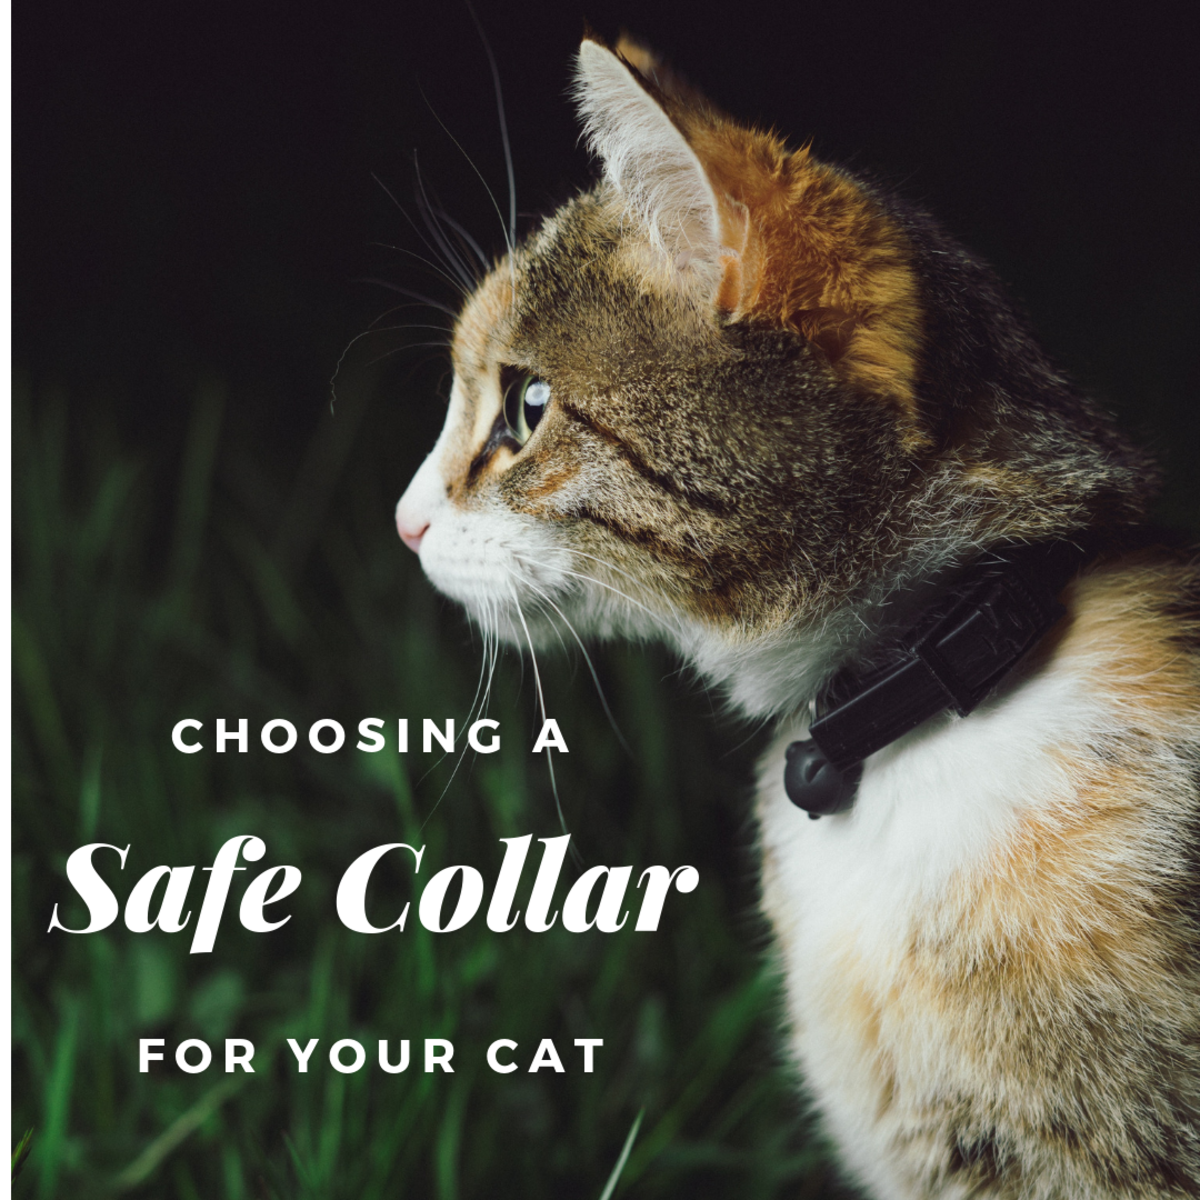 Safe Cat Collars: The Best Collar for Cats